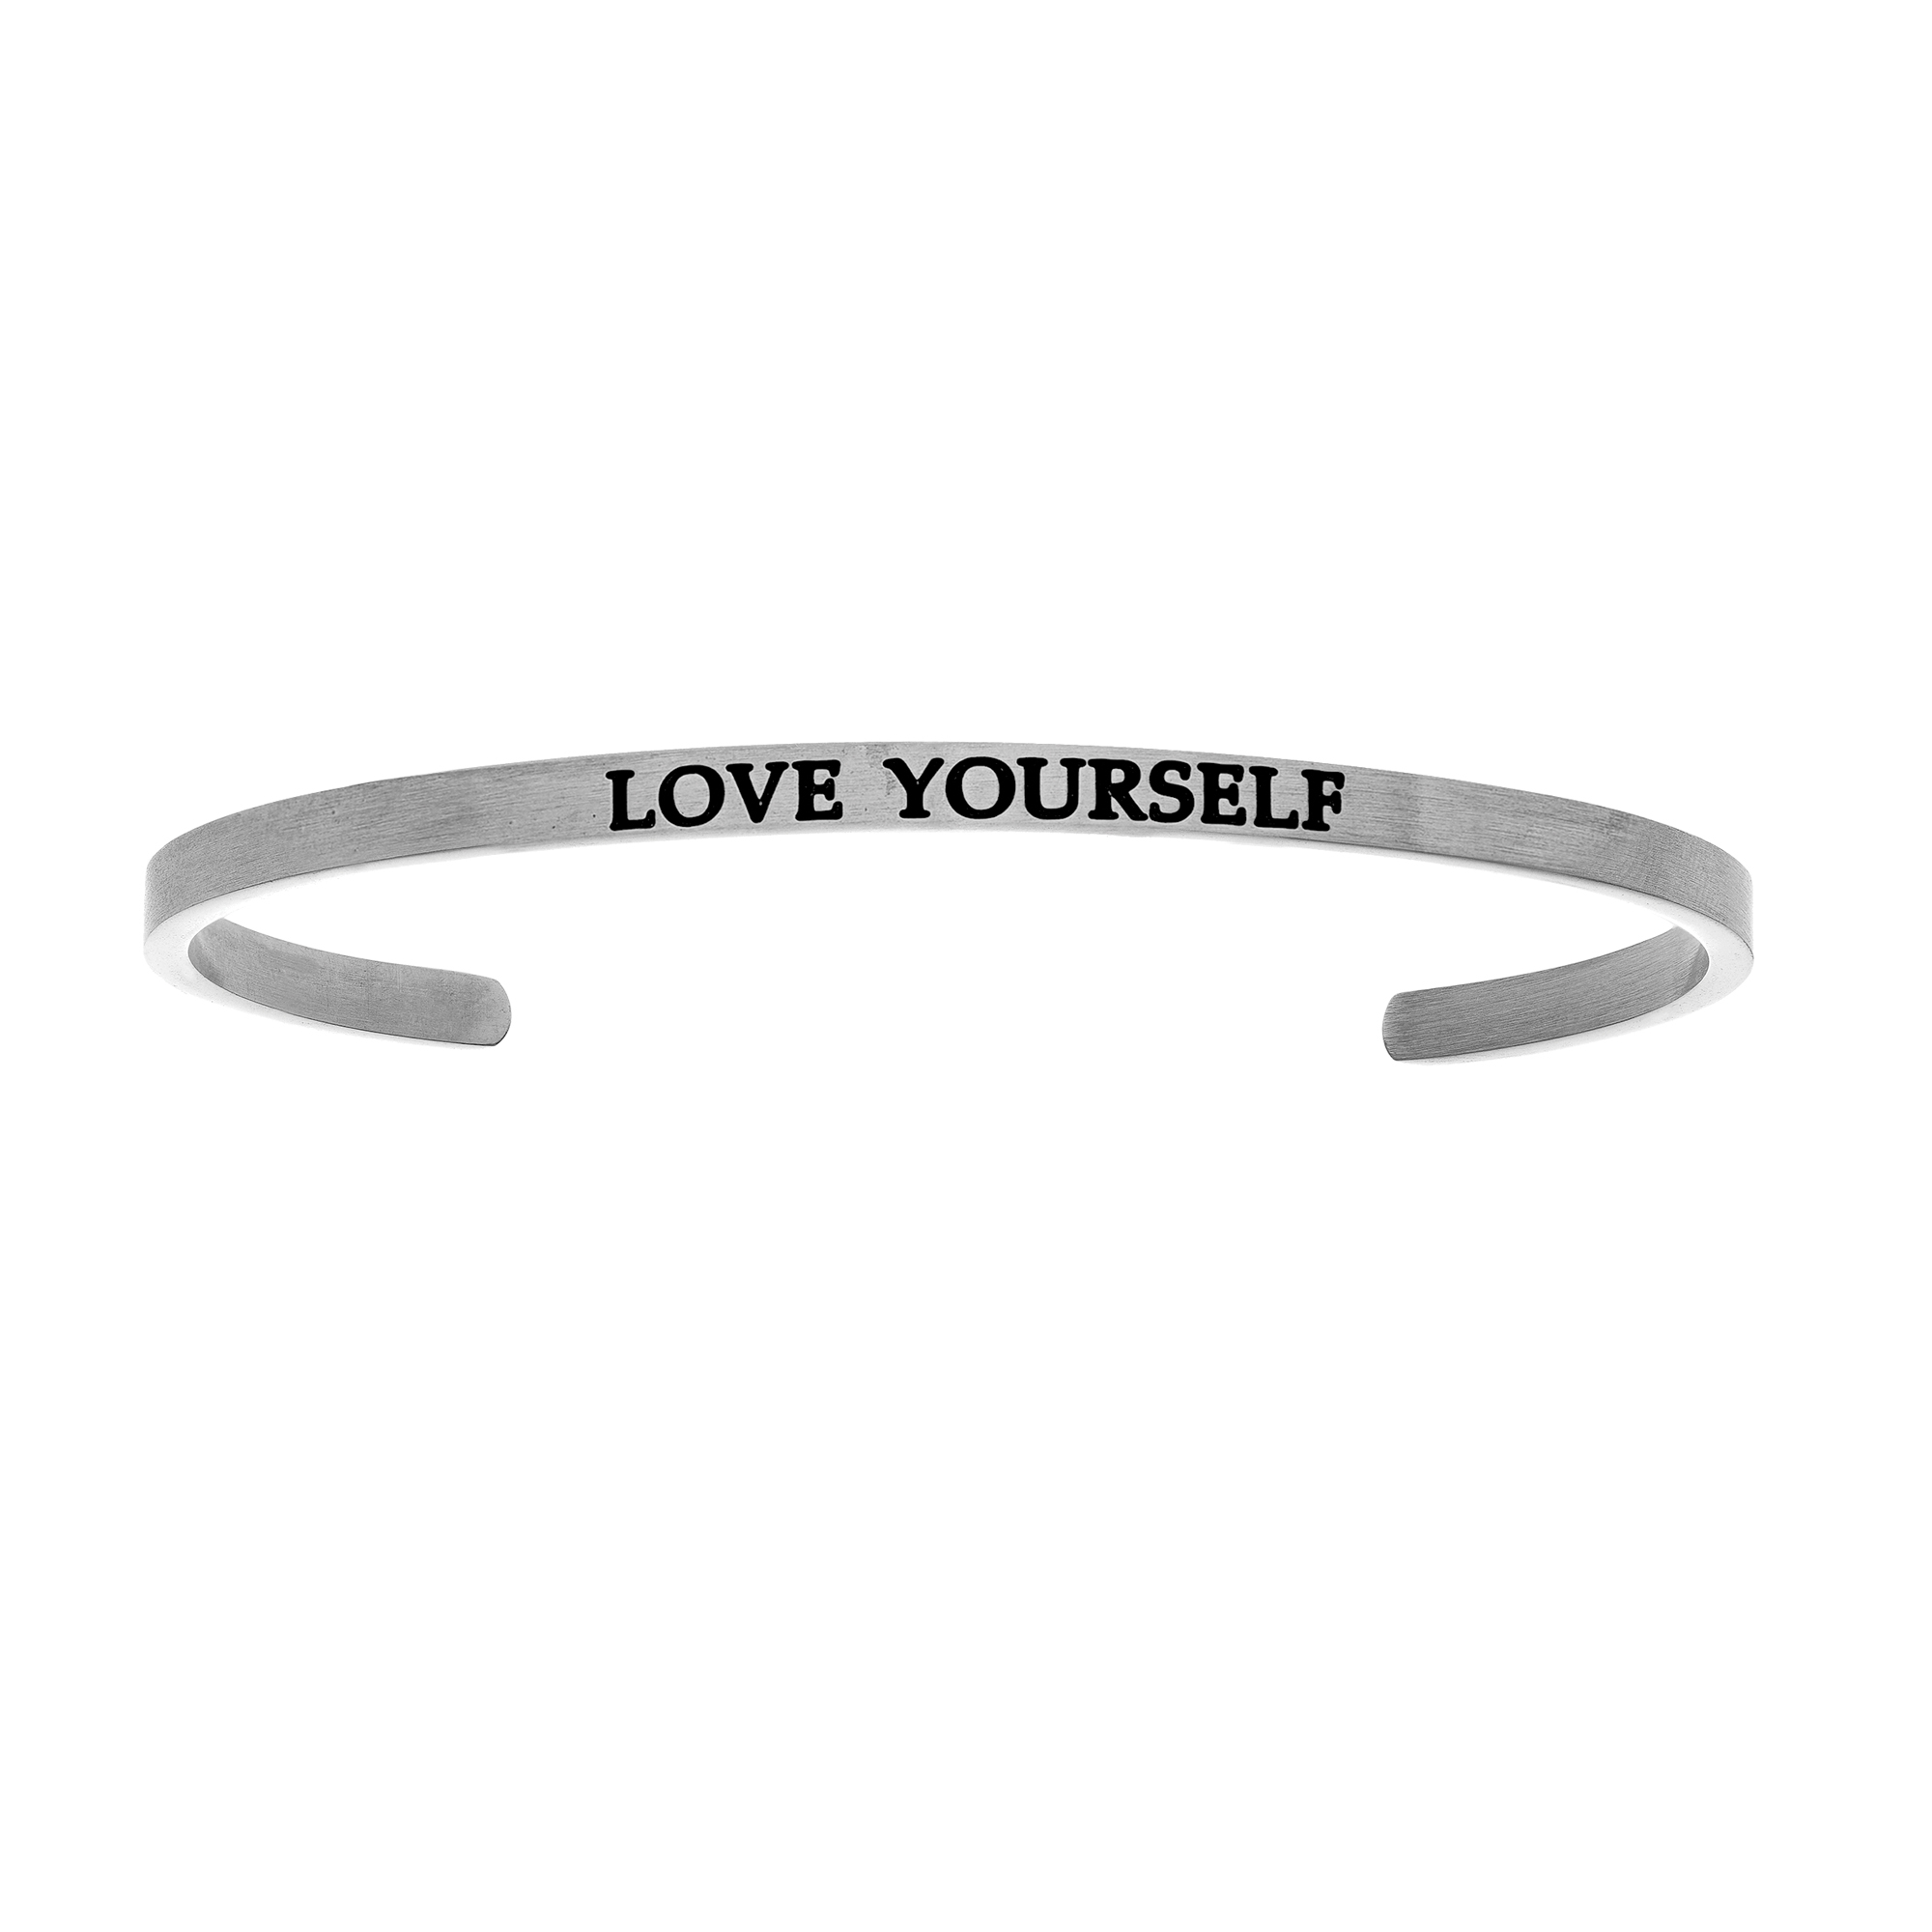 Intuitions Stainless Steel LOVE YOURSELF Diamond Accent Cuff  Bangle Bracelet, 7  Each of these bracelets carries a personal message of inspiration, spirituality or just plain fun. Meant to be worn alone or stacked together for a smart, contemporary look, they're a great self-purchase or as a gift for family or friends. Intuitions are made of stainless steel and come in two styles standard cuff or friendship and fit practically any wrist. Intuitions Jewelry makes the difference in your daily life by designing and creating bracelets and bangles with motivational quotes to inspire you and your loved ones. Giving back $.25 of each bracelet to BABY2BABY